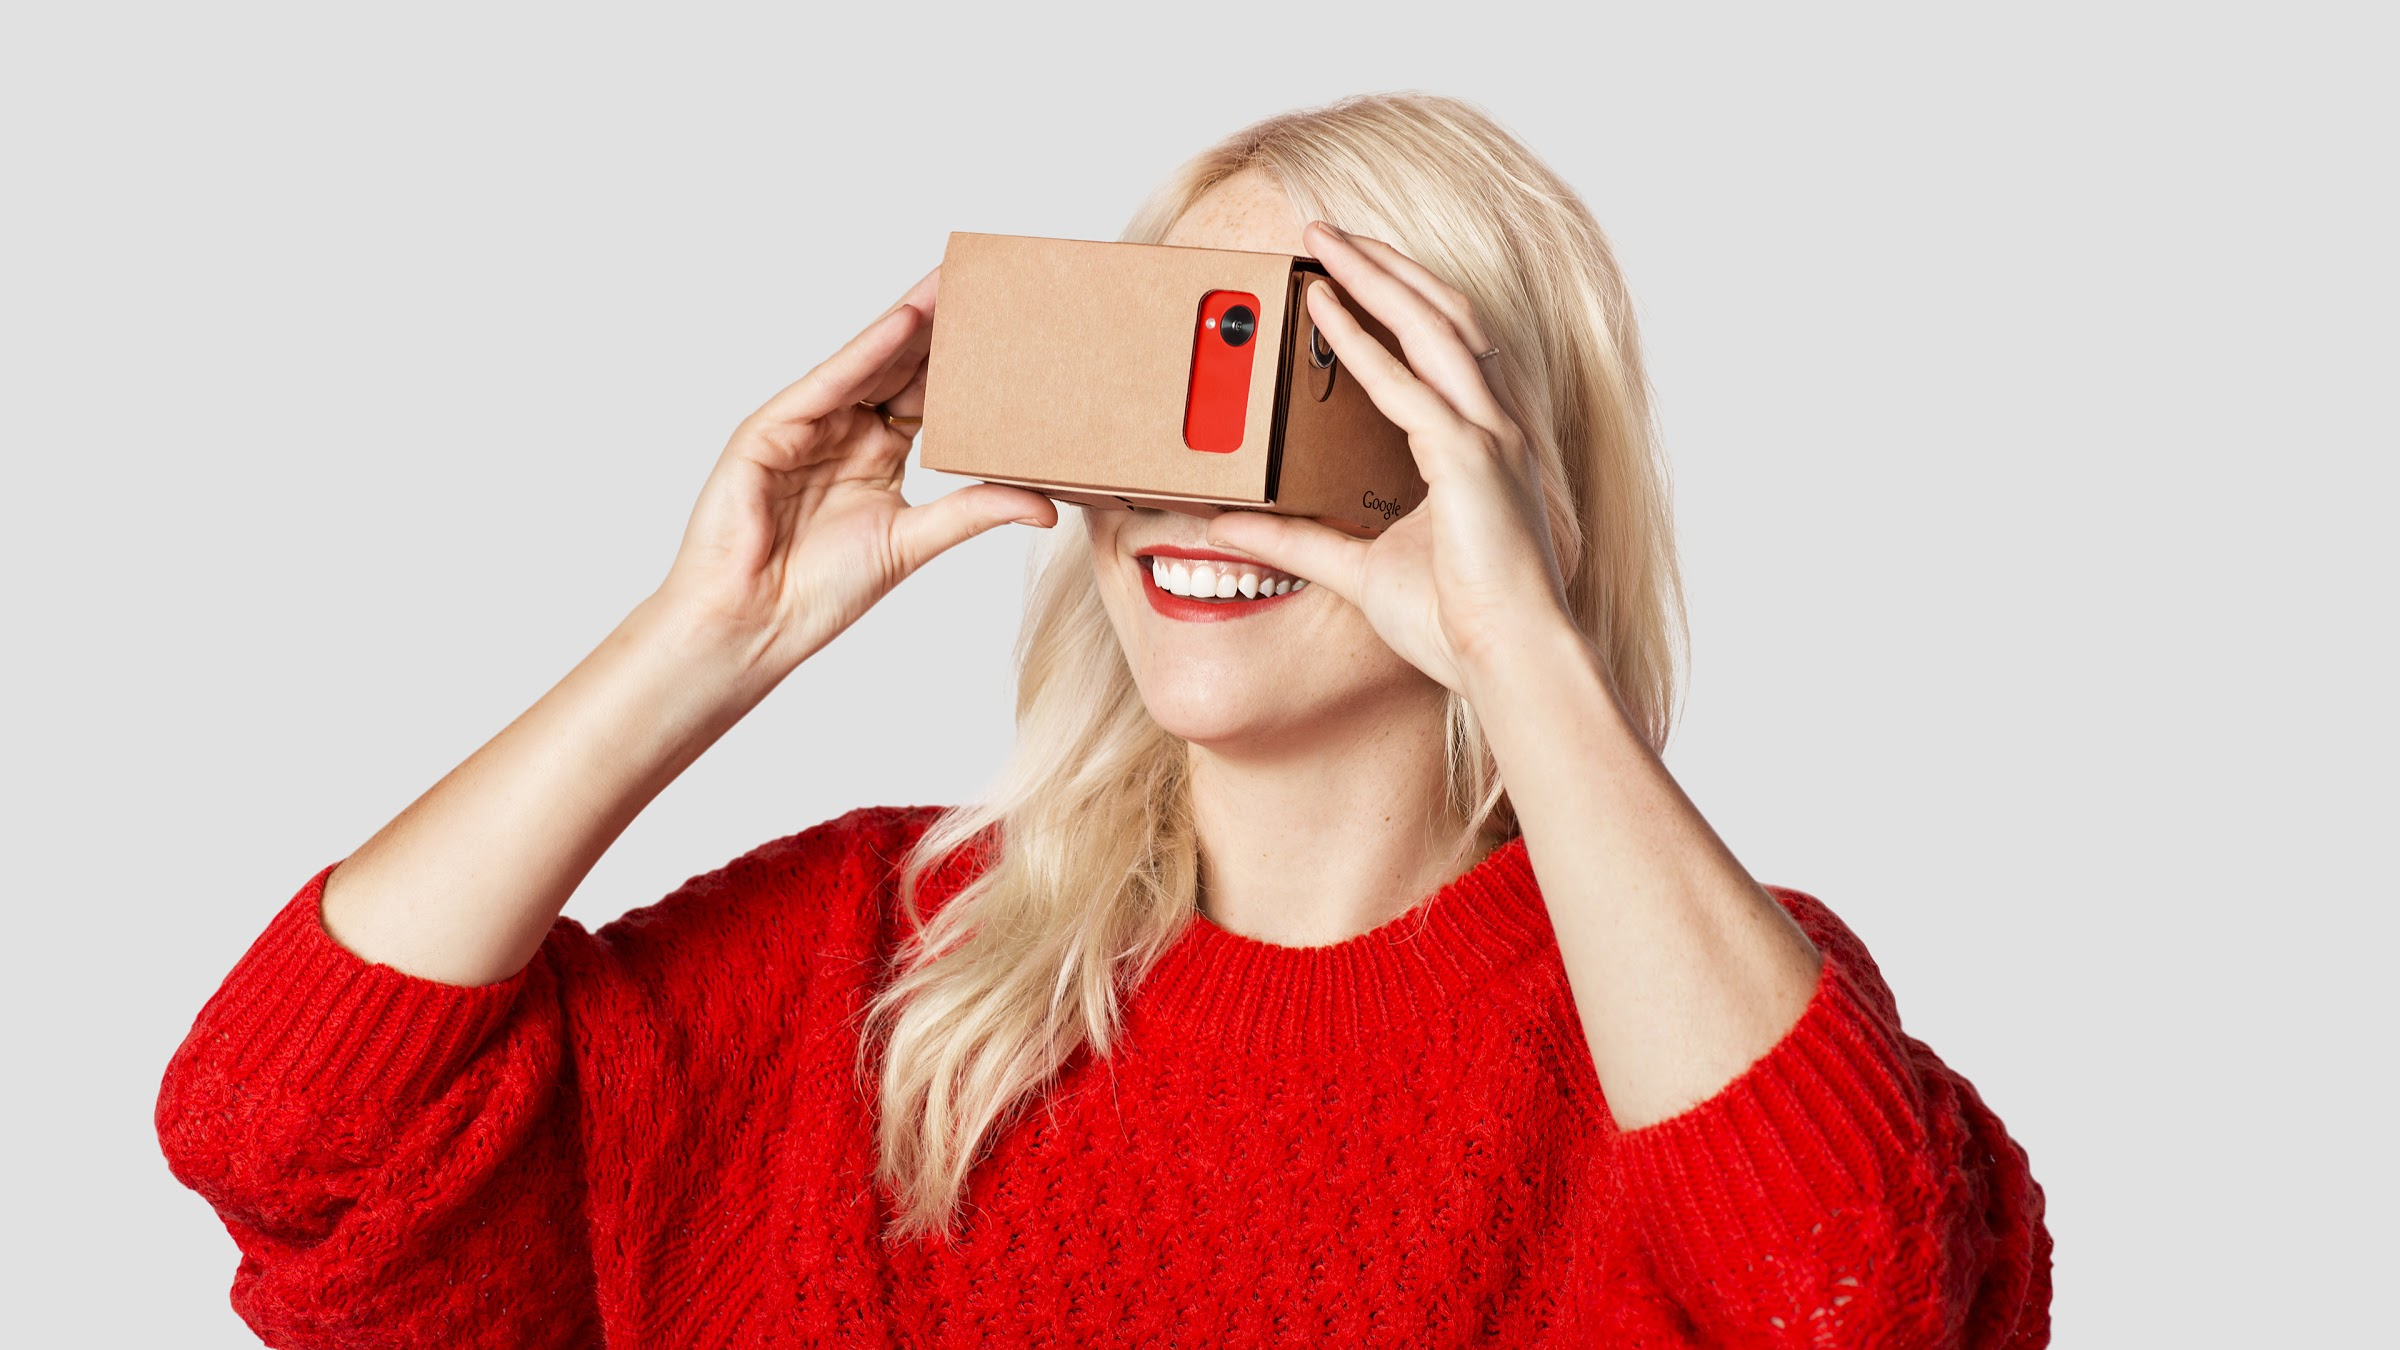 Google Cardboard brings virtual reality to your iPhone at long last, available now